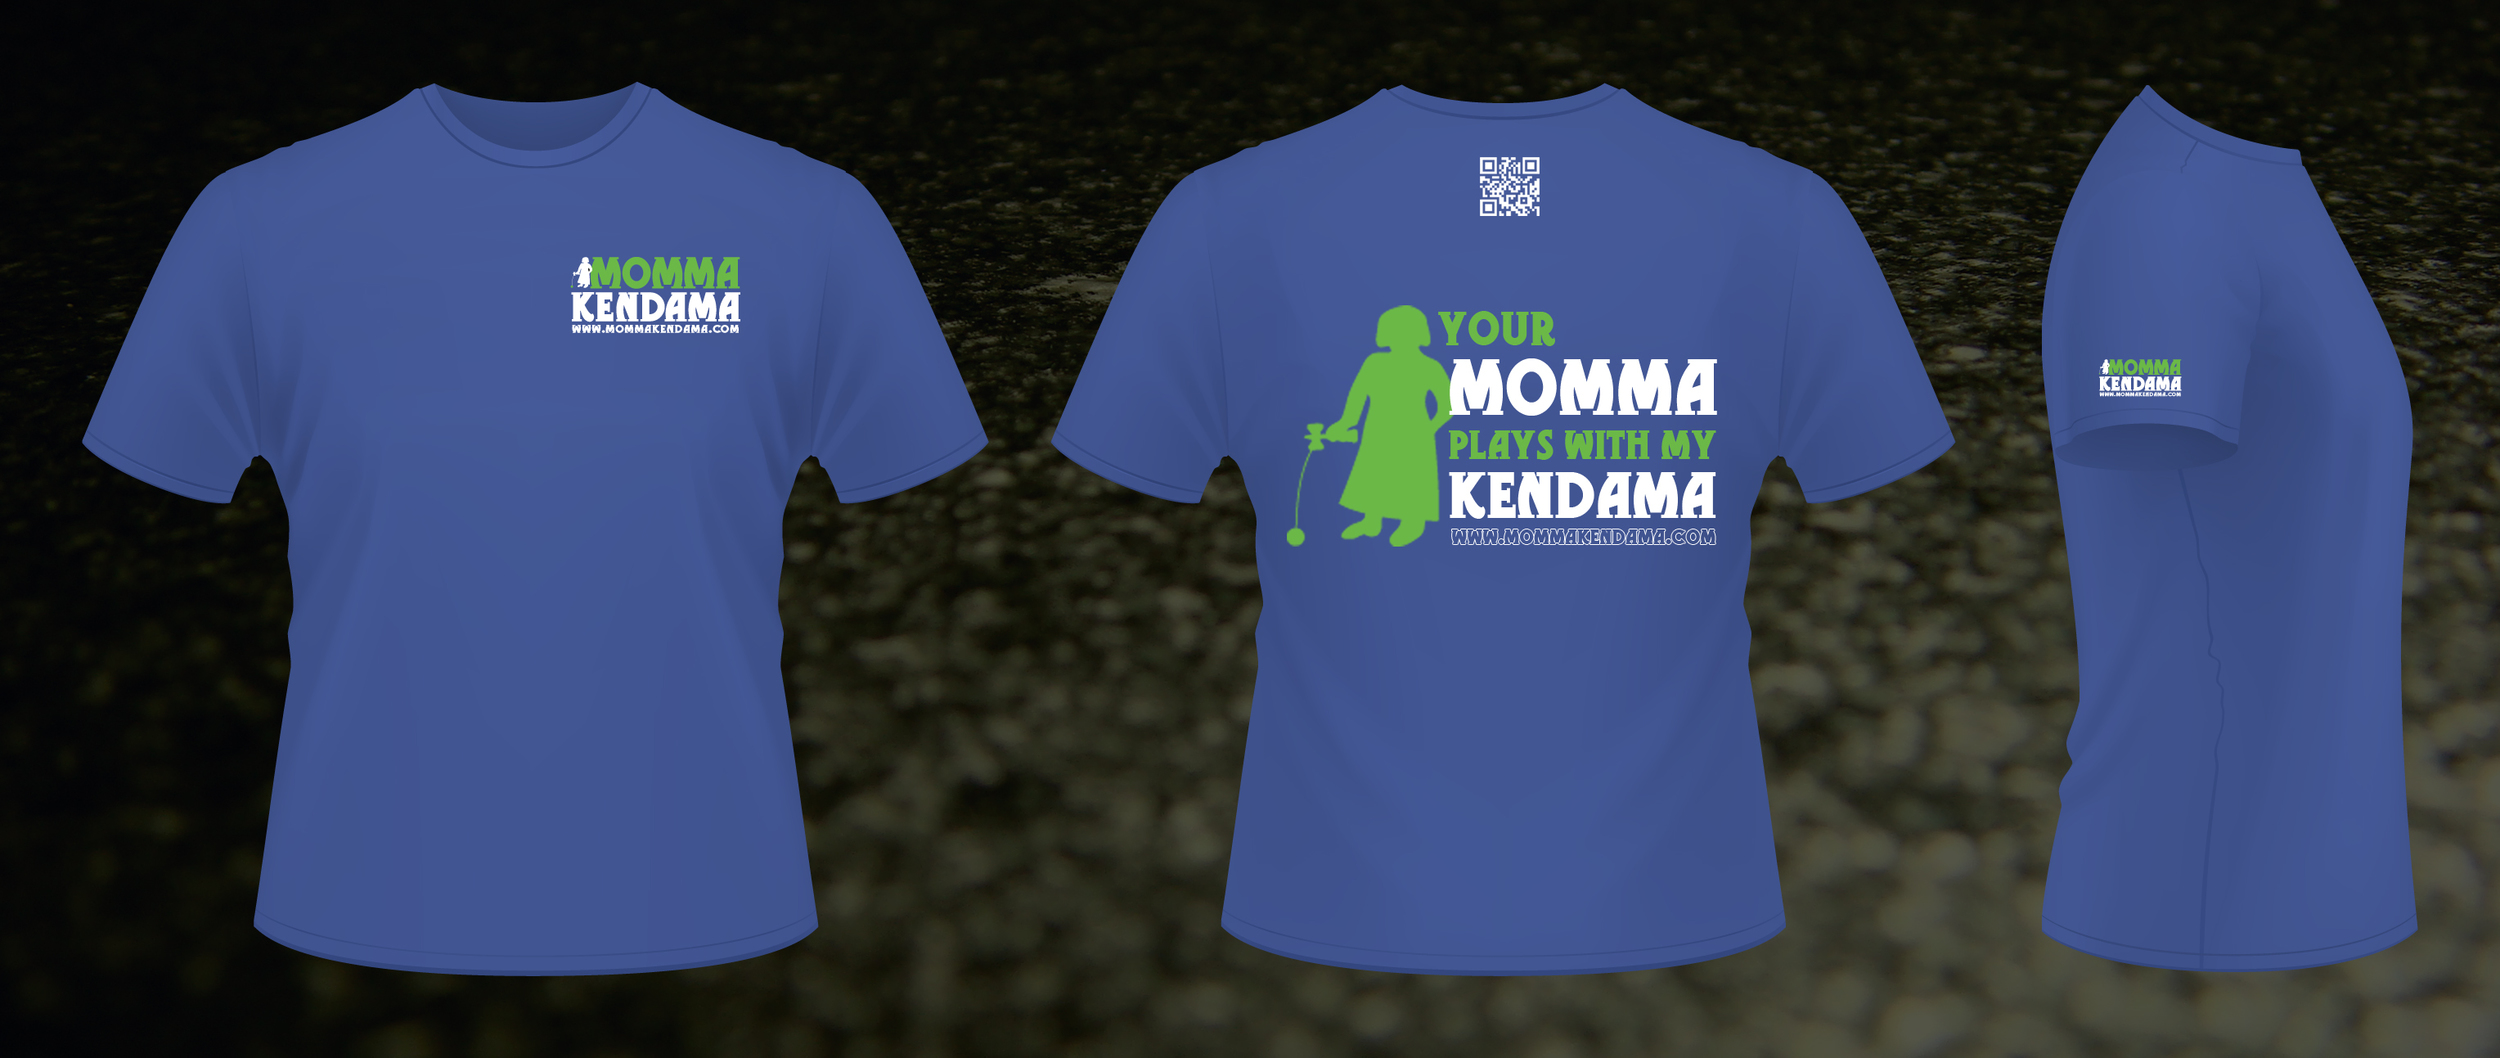 'your momma...' t-shirt